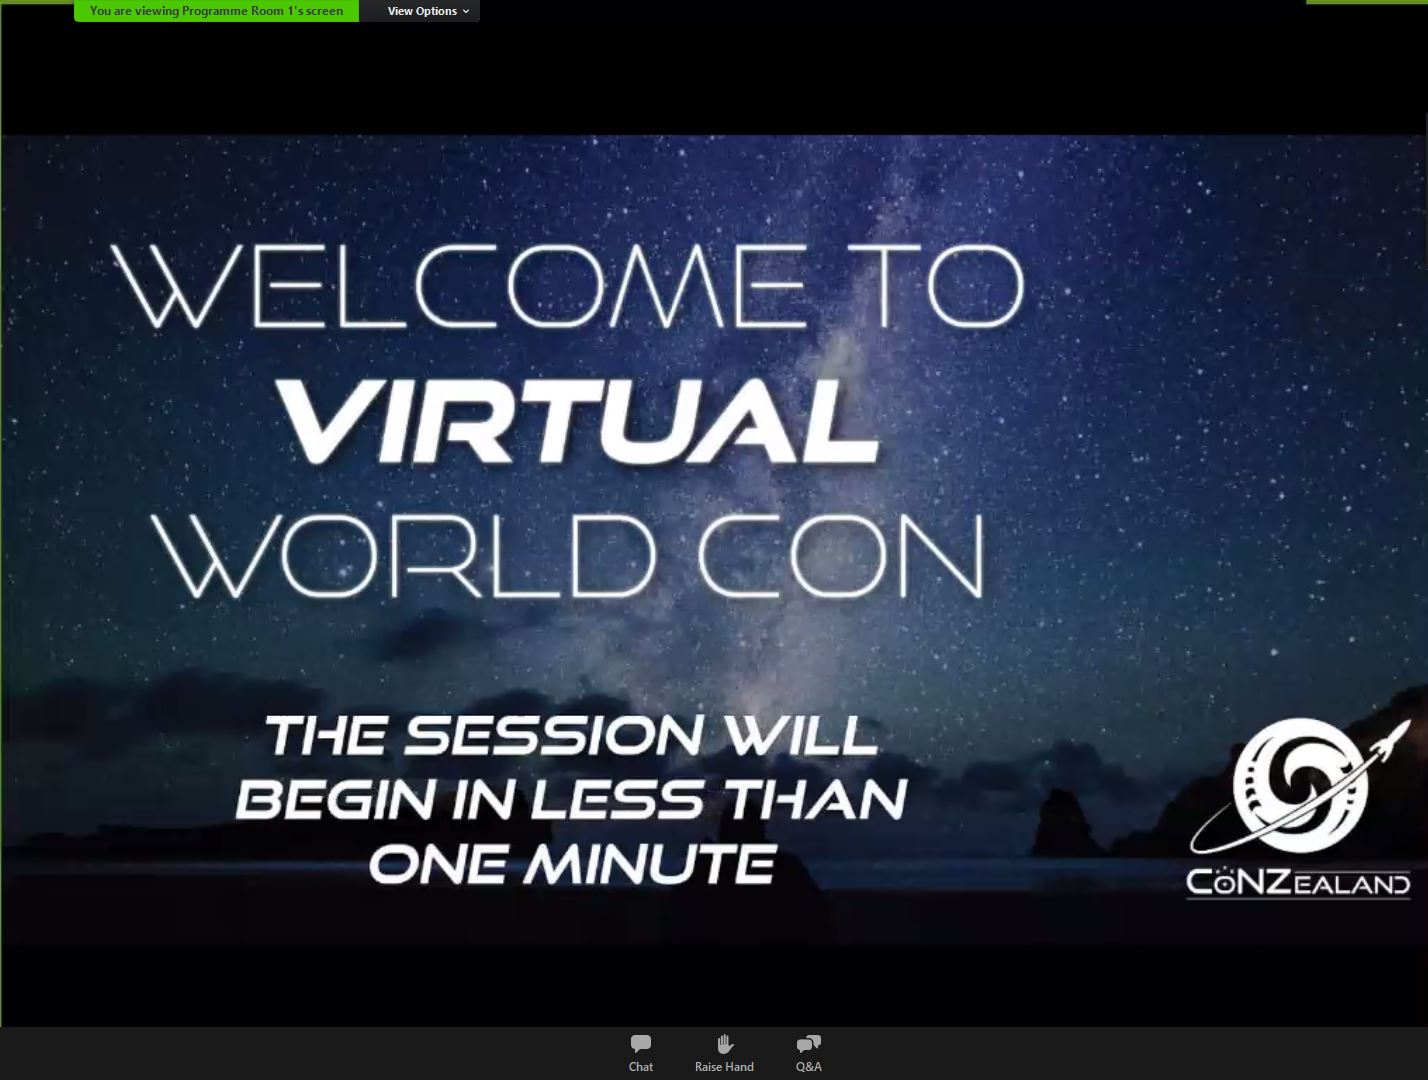 CoNZealand logo and inscription 'Welcome to virtual worldcon The session will begin in less than one minute' with the starry night background.